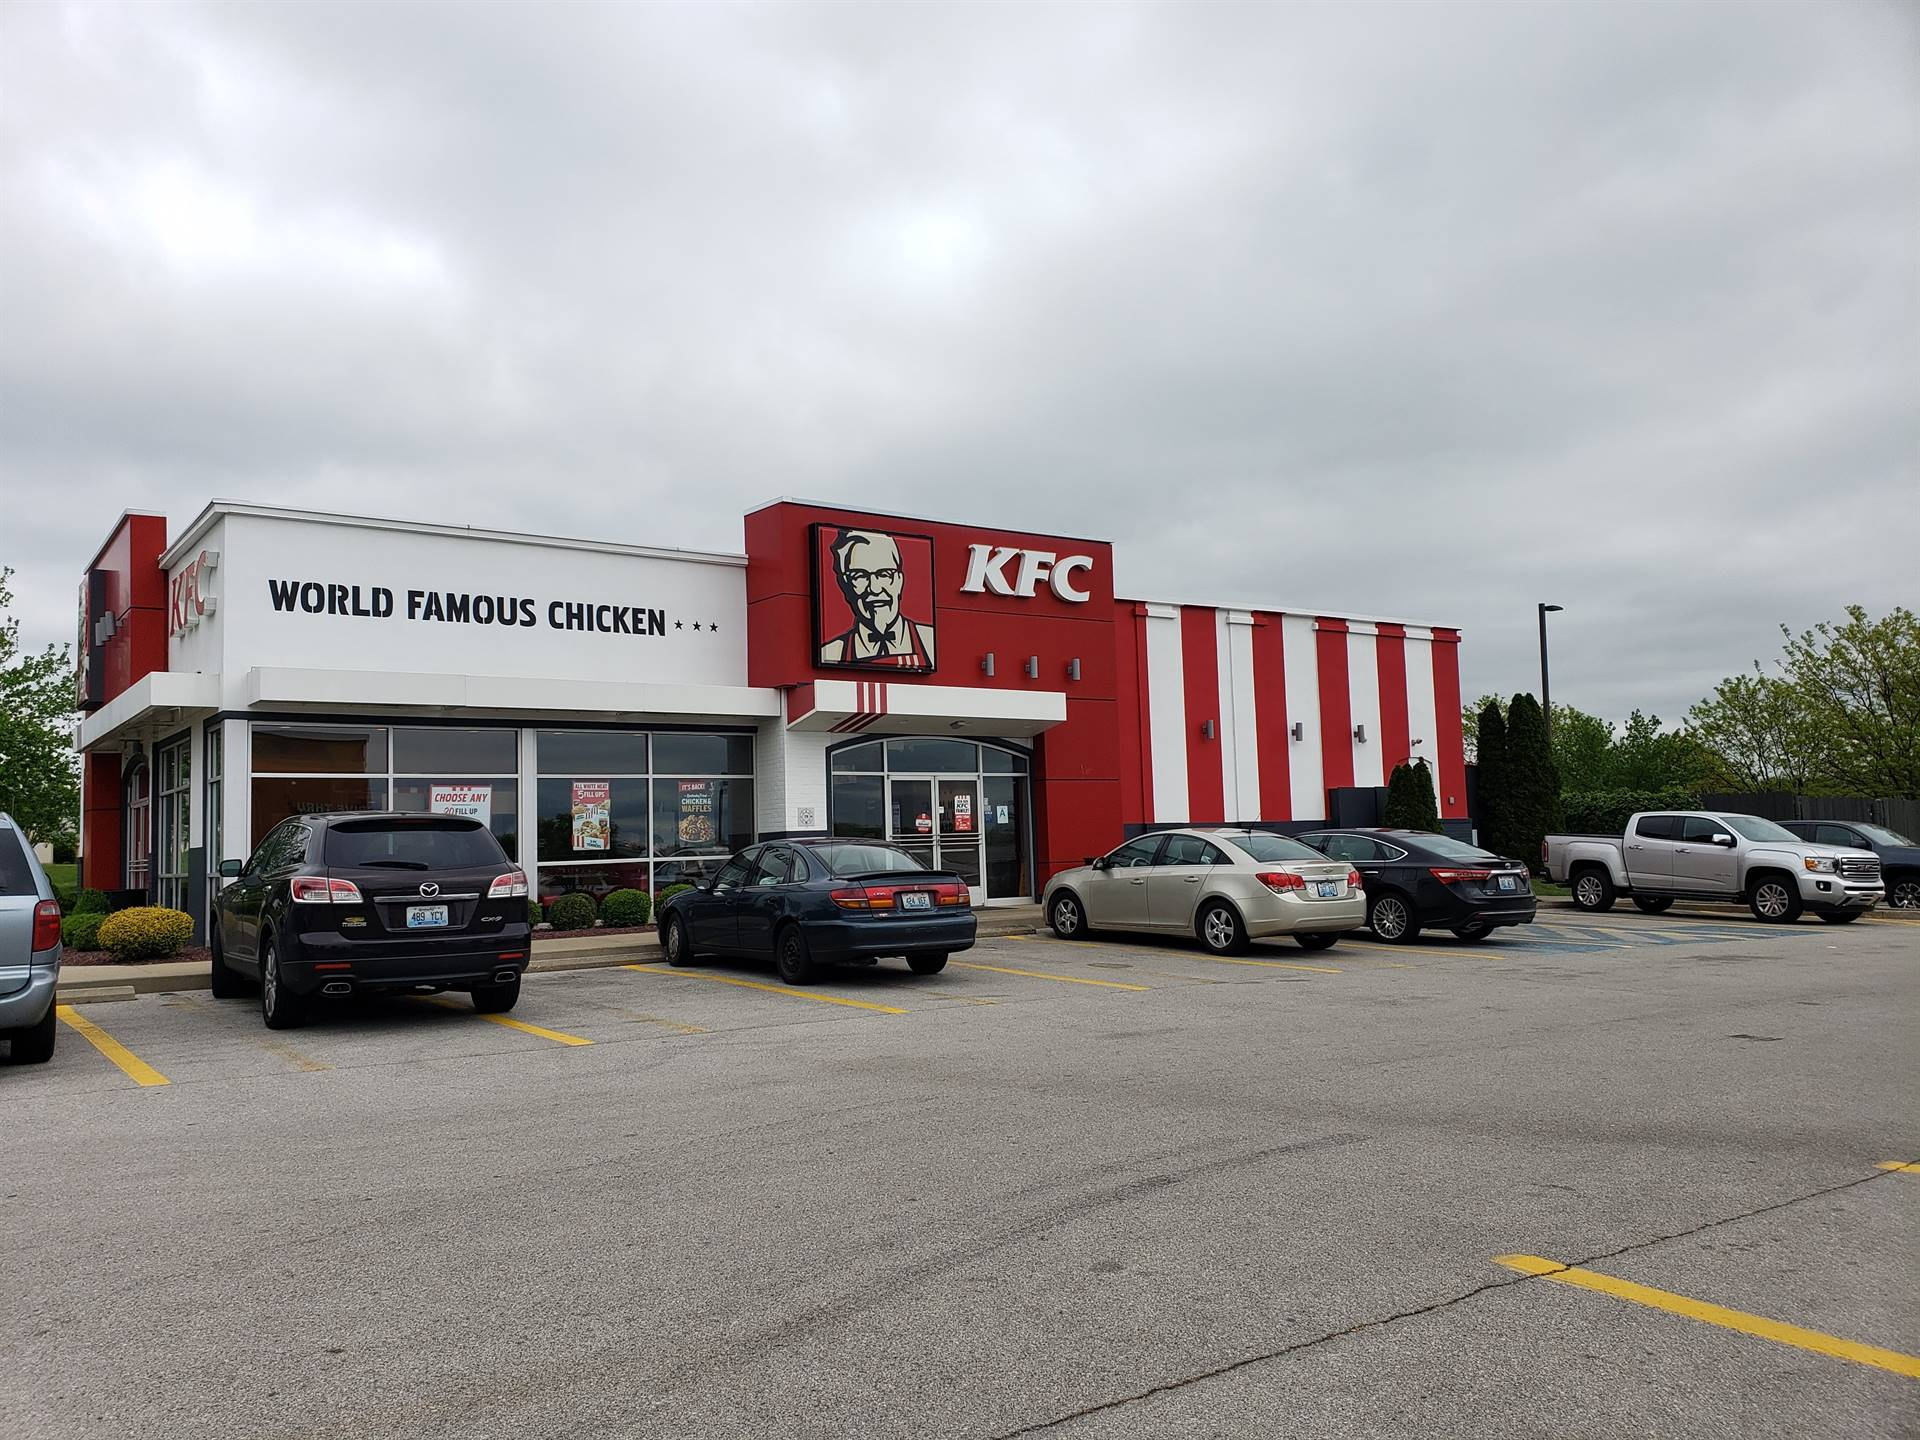 KFC in Kentucky